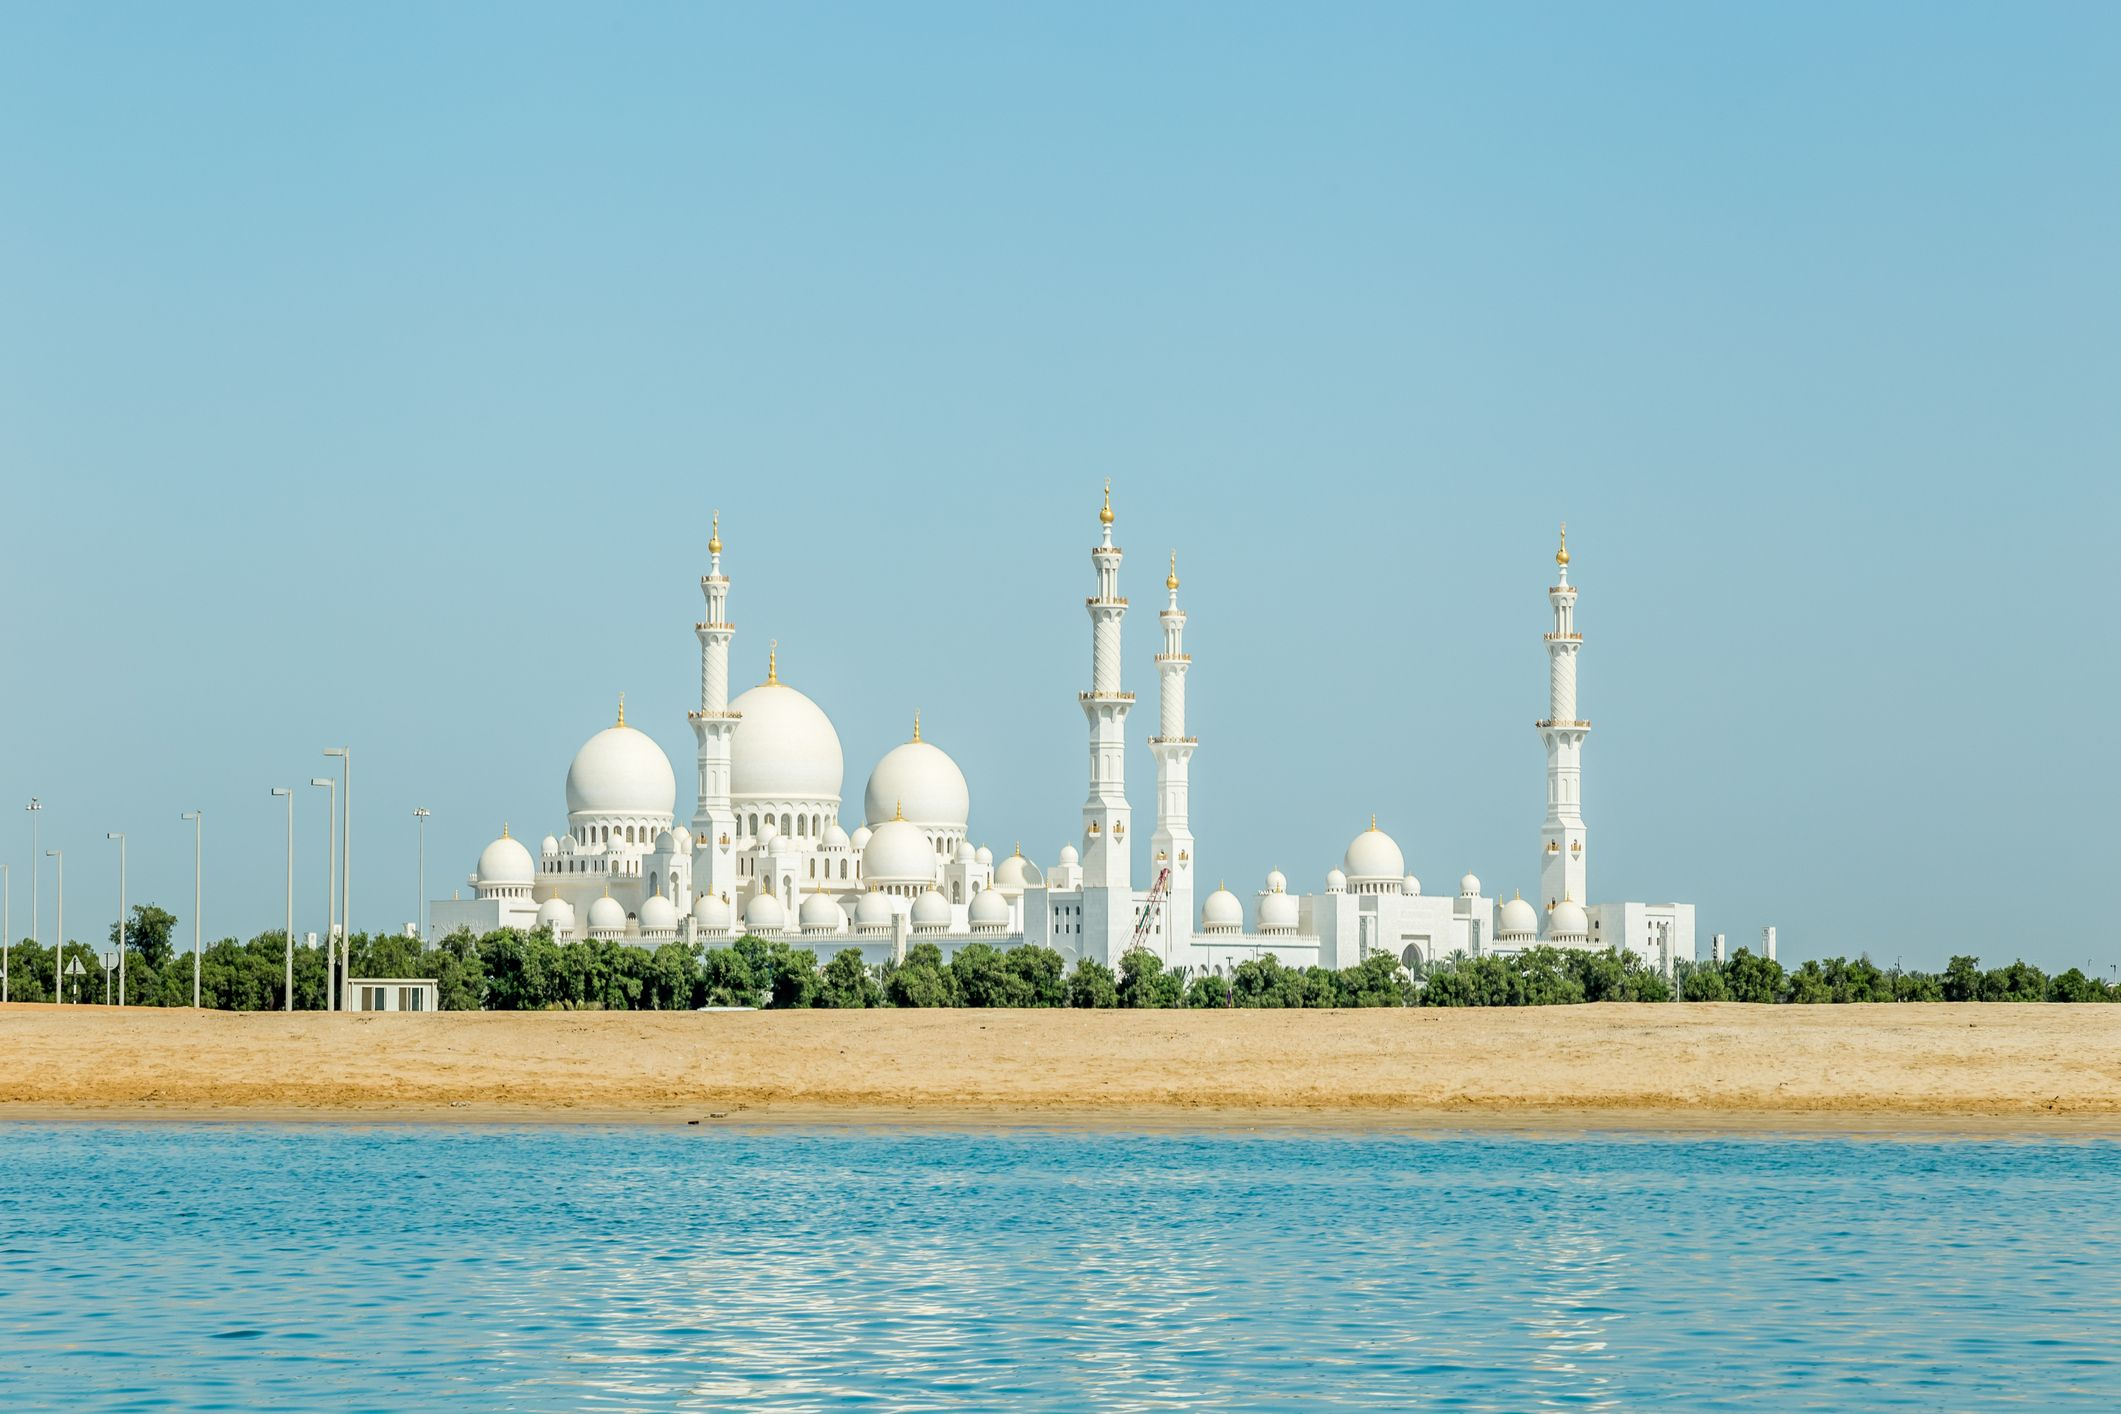 Sheikh Zayed Mosque Abu Dhabi - most popular landmarks in the world